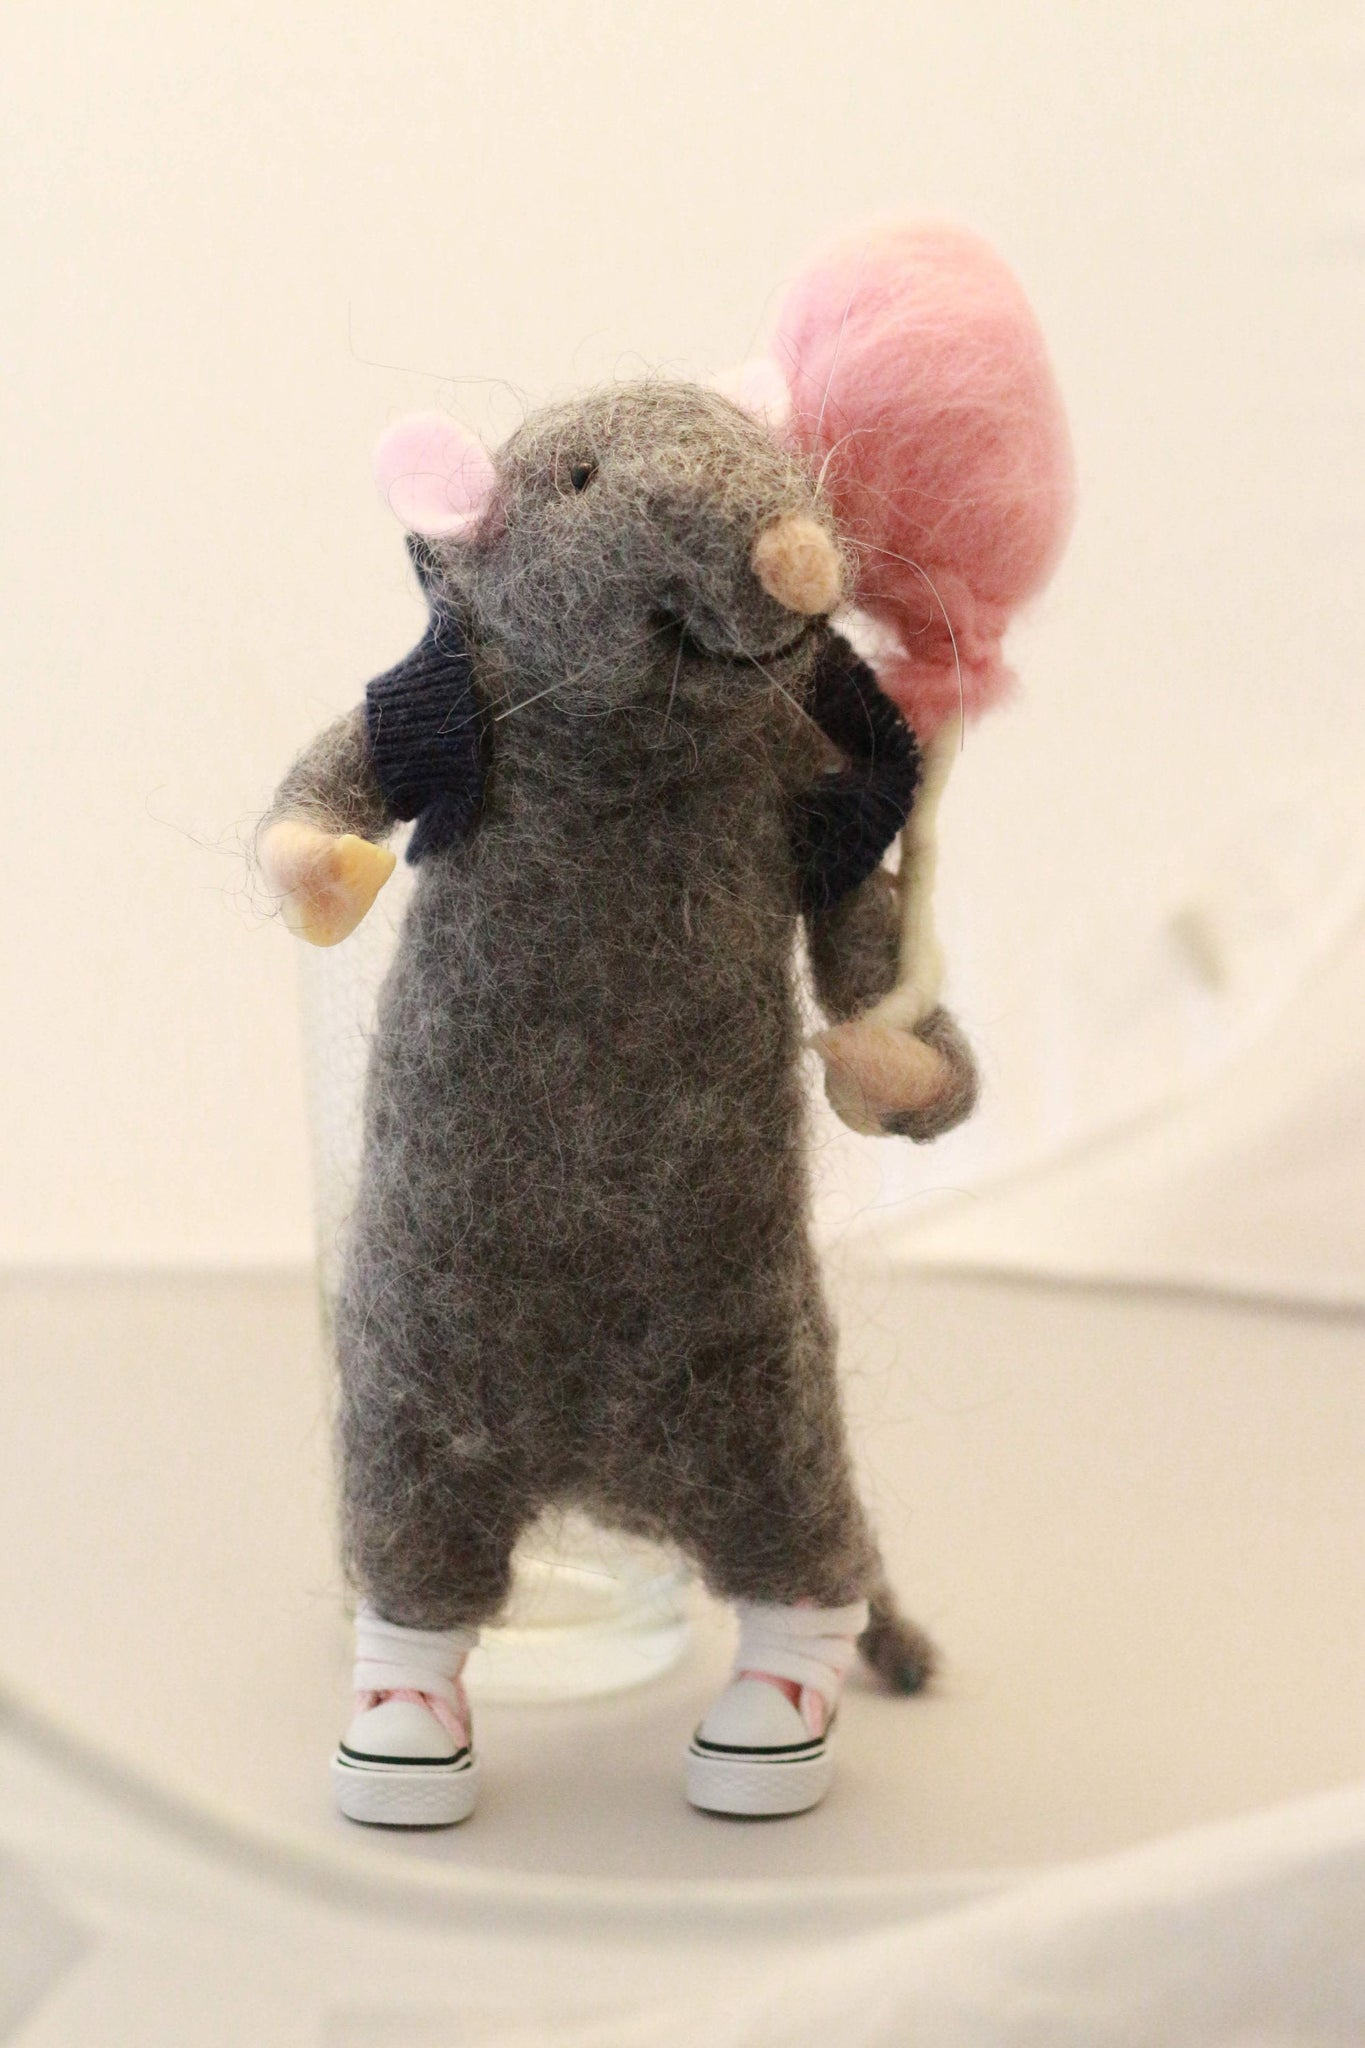 A gray mouse. Personalised mouse. Mouse miniature. Collectible mouse. Felted mouse. Mouse wearing sneakers. Mouse with s ballon. Felted rat.